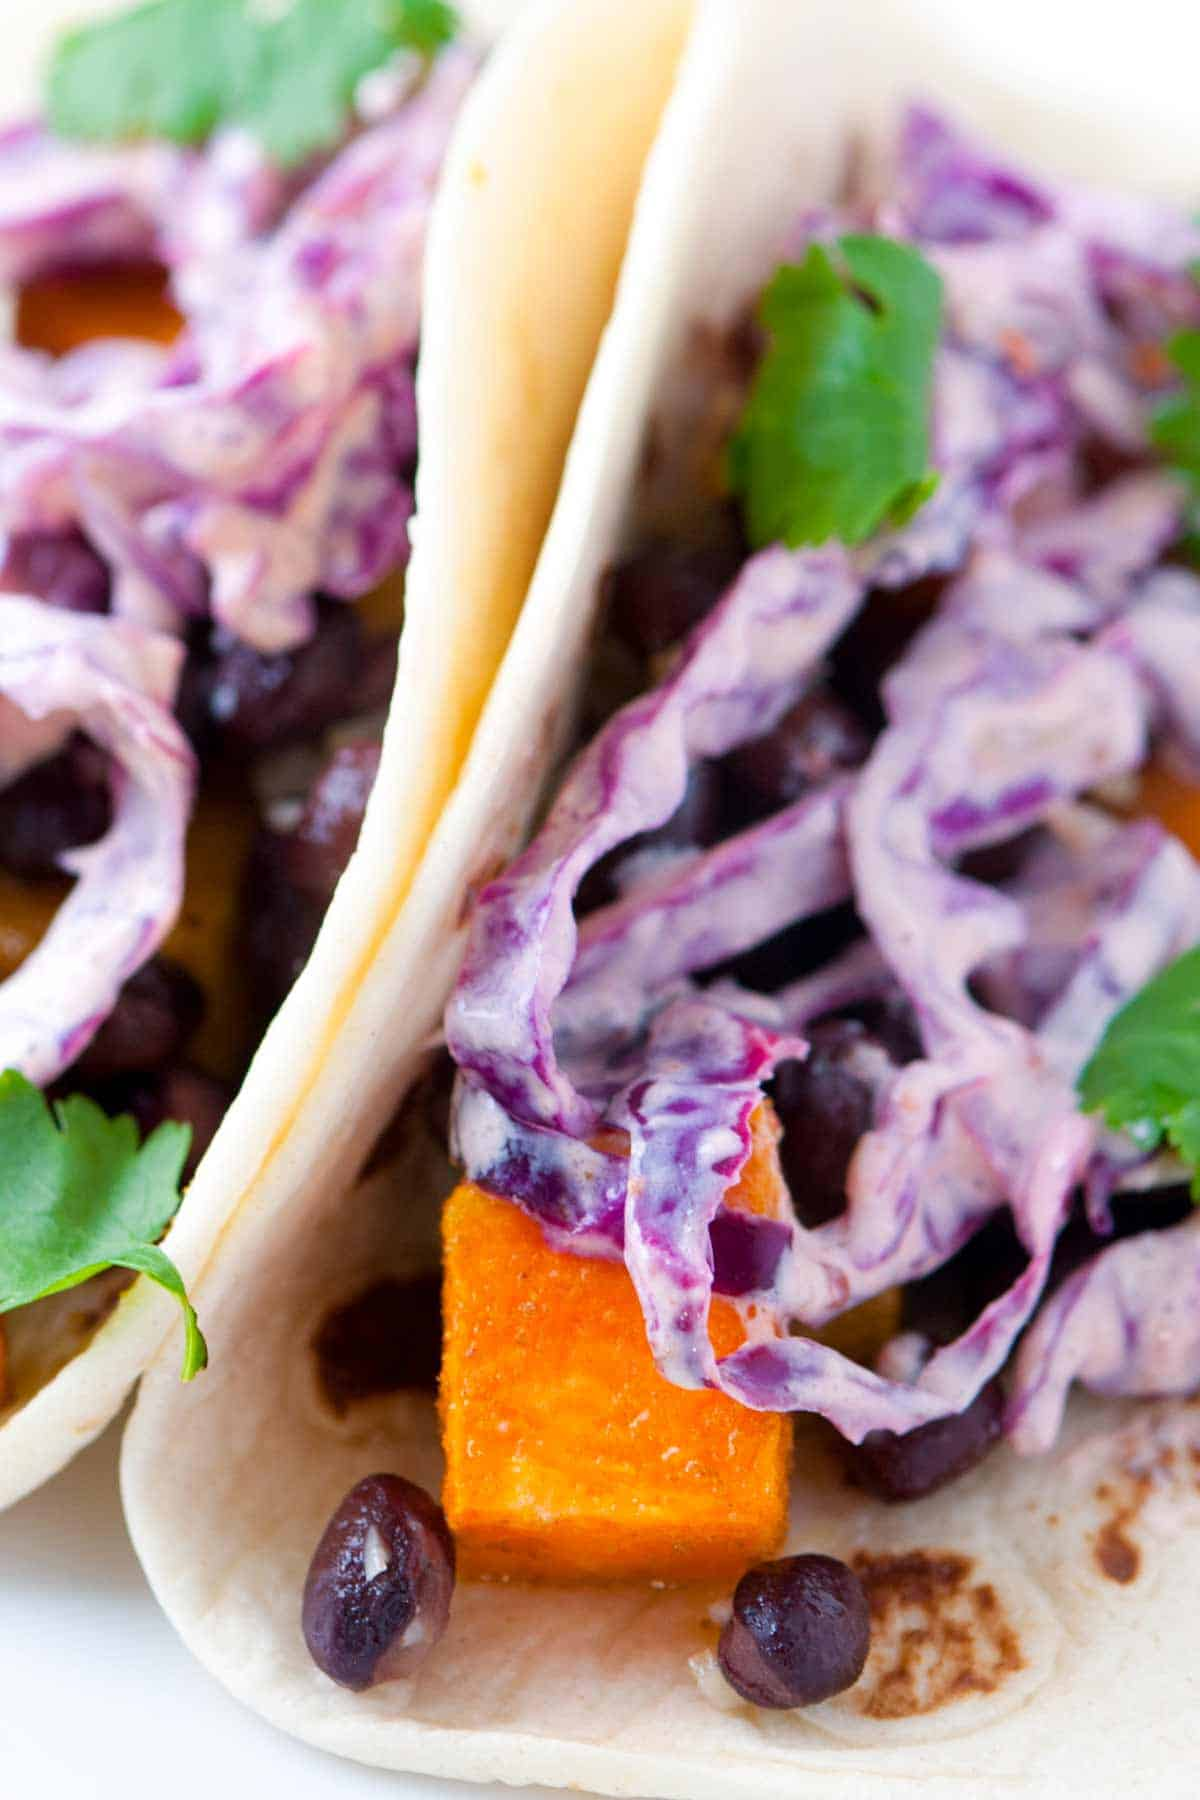 Roasted sweet potato and black bean tacos topped with a quick and easy chipotle slaw. Fast and healthy!